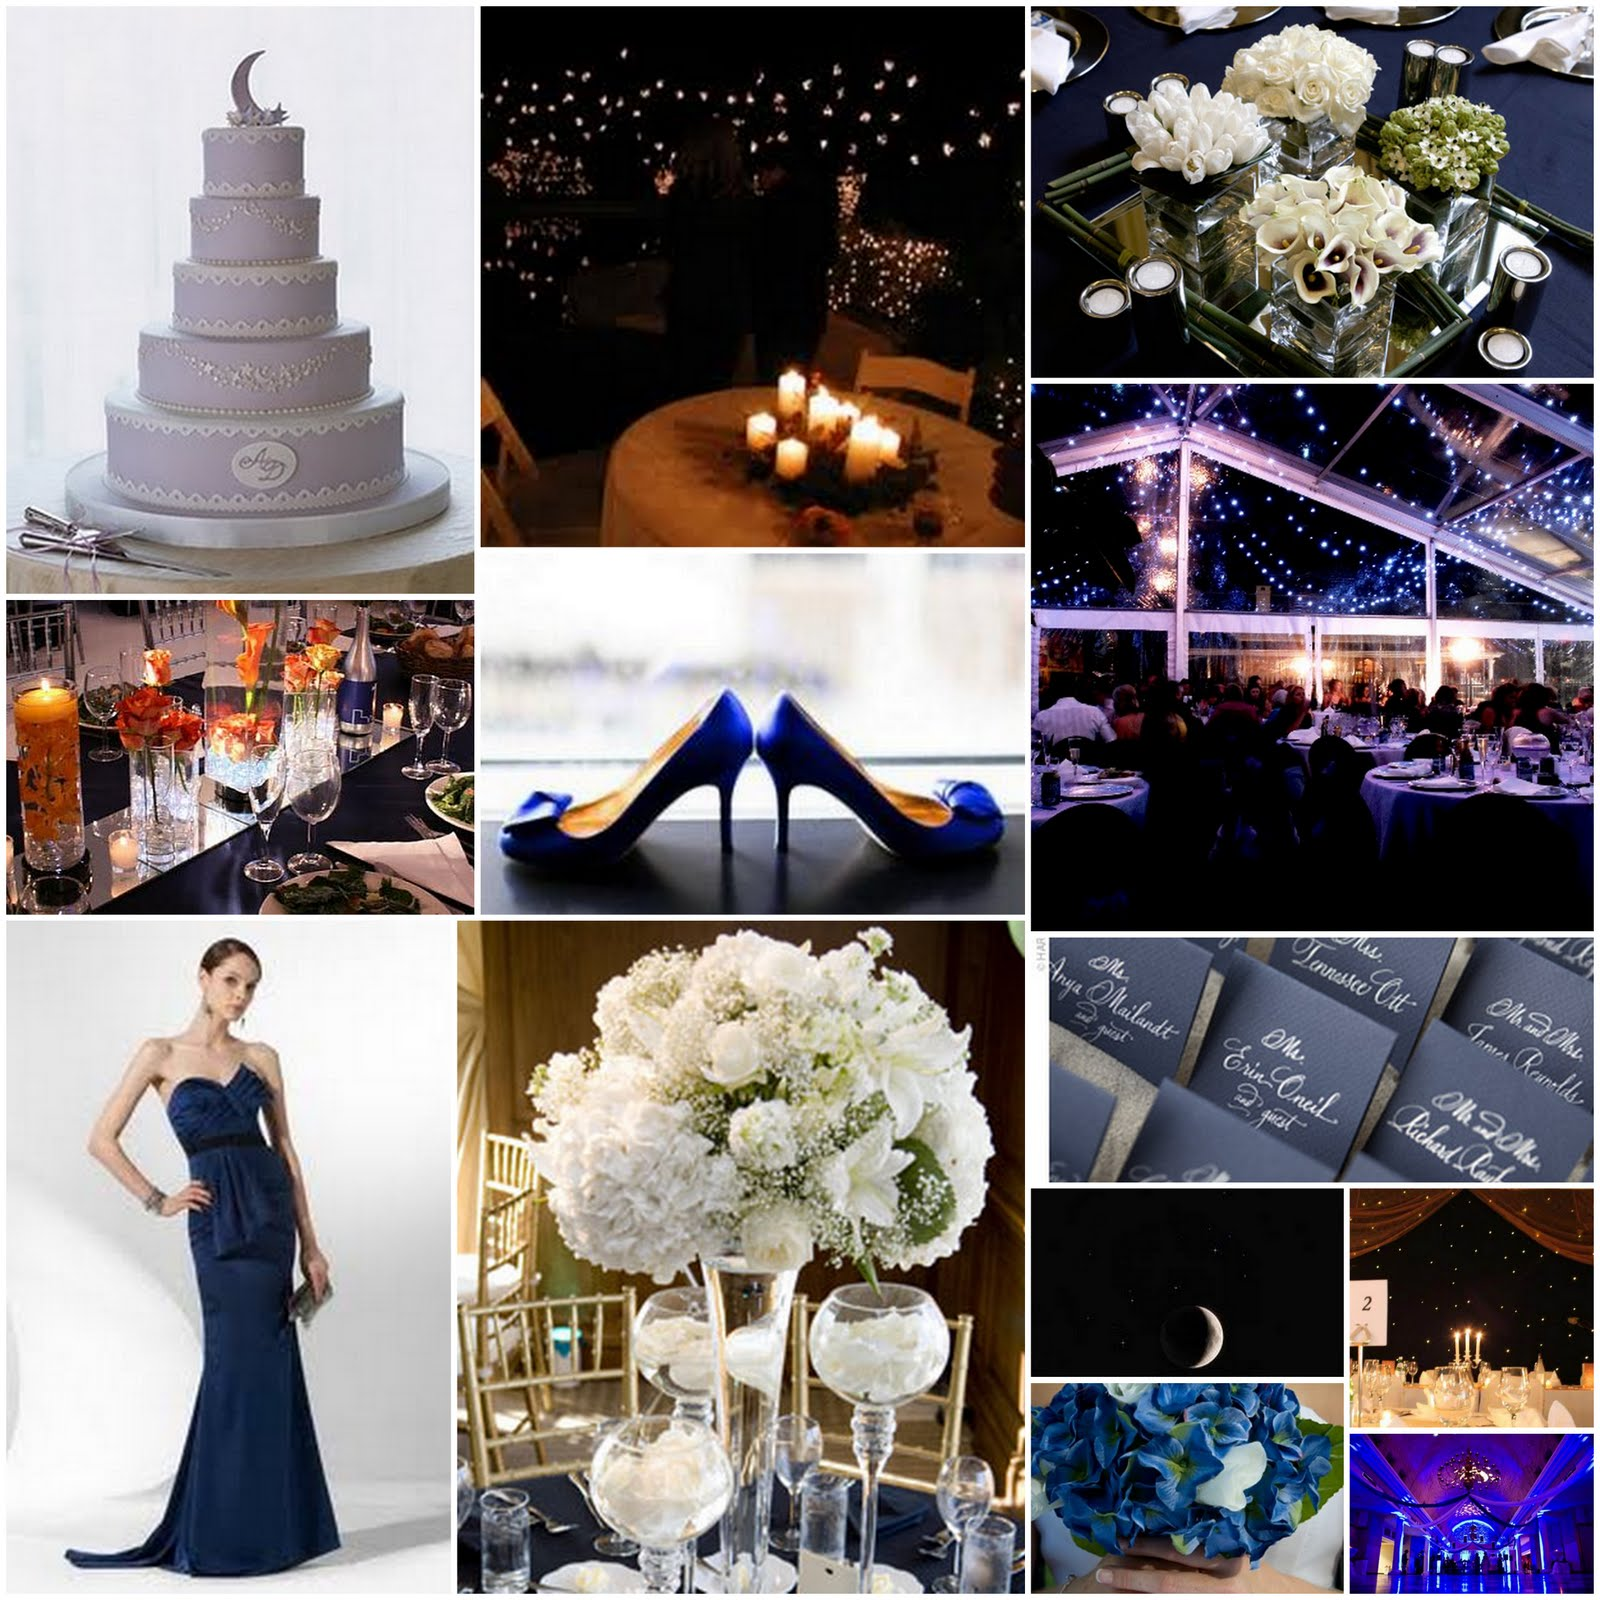 Celestial Weddings: When You Wish Upon A Star